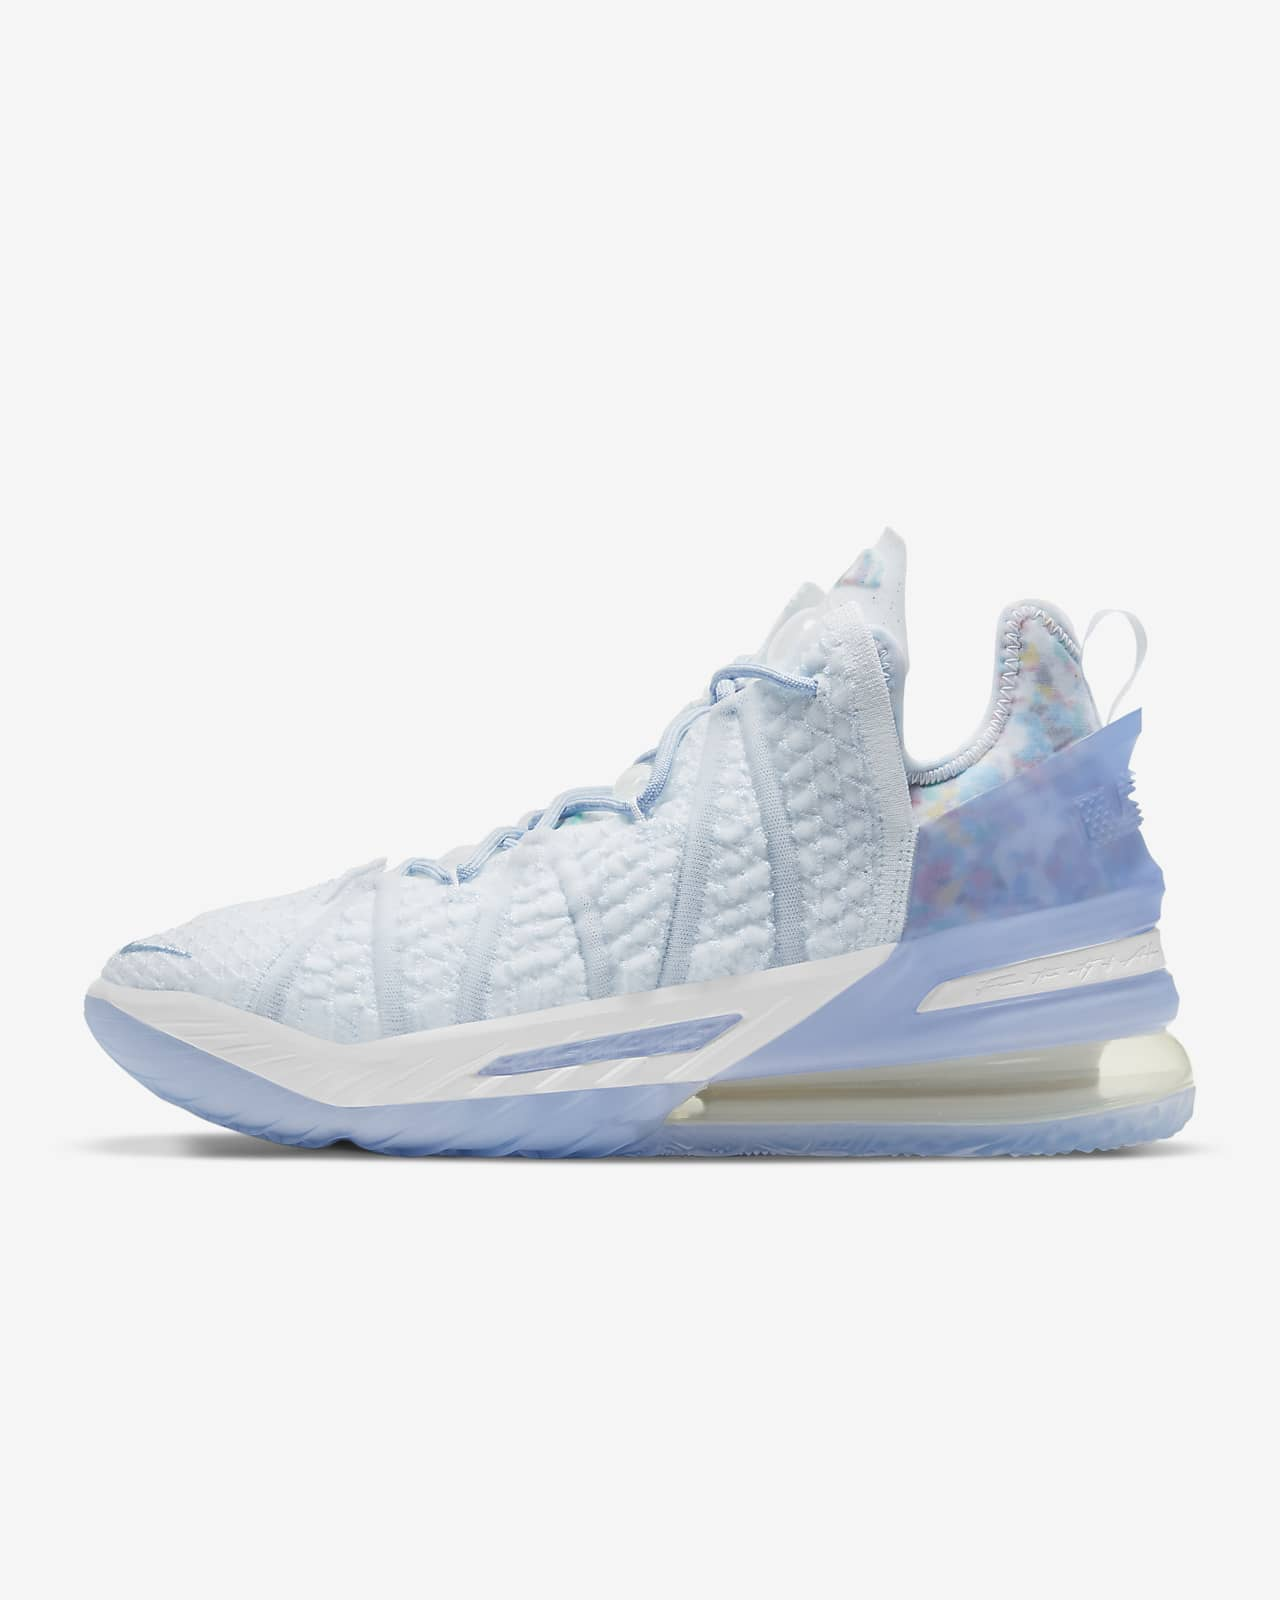 Chaussure de basketball LeBron 18 « Play for the Future »